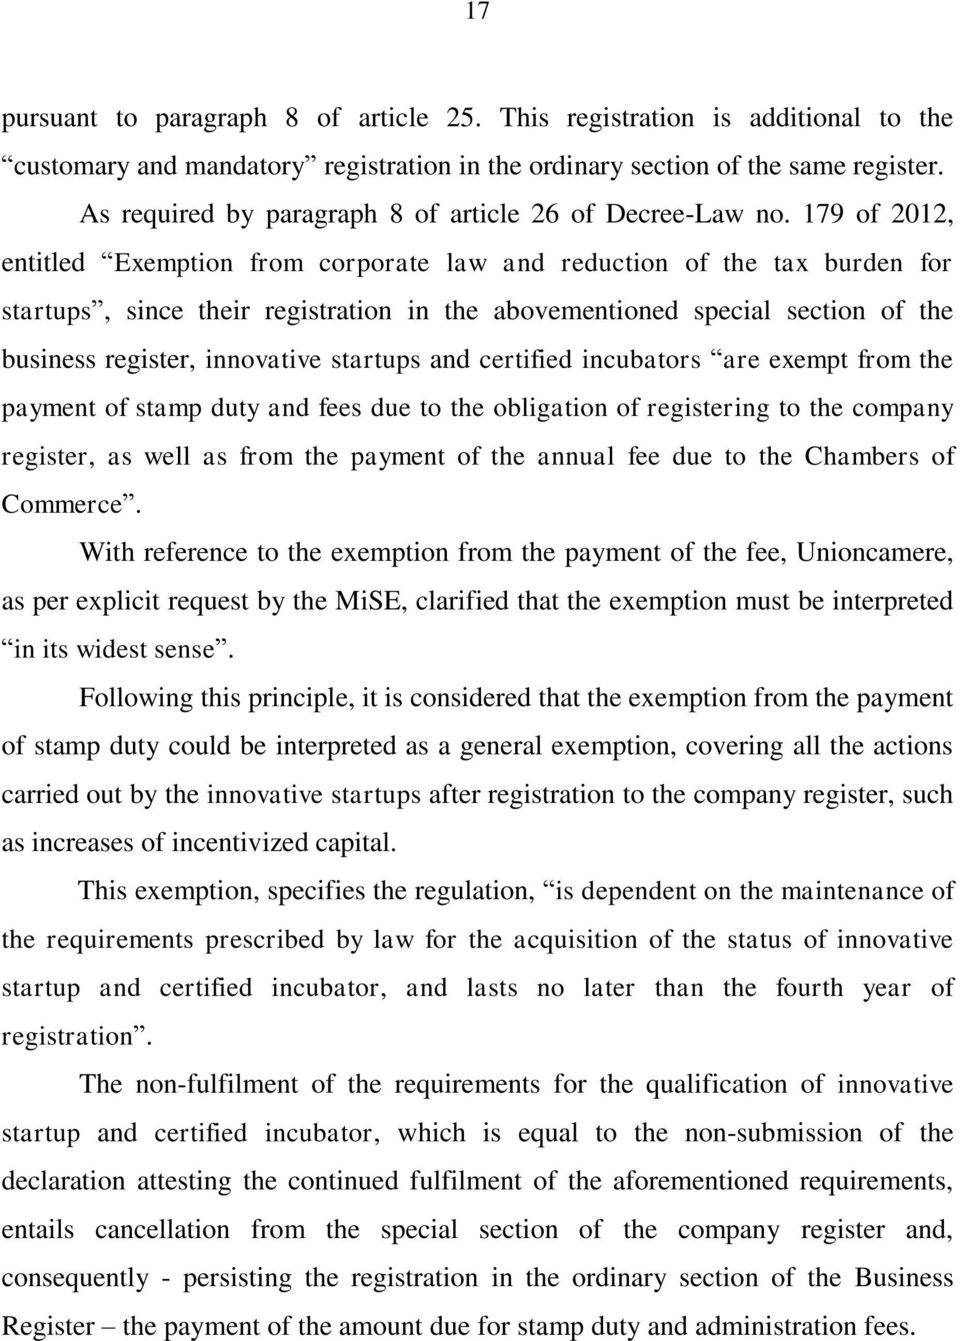 179 of 2012, entitled Exemption from corporate law and reduction of the tax burden for startups, since their registration in the abovementioned special section of the business register, innovative